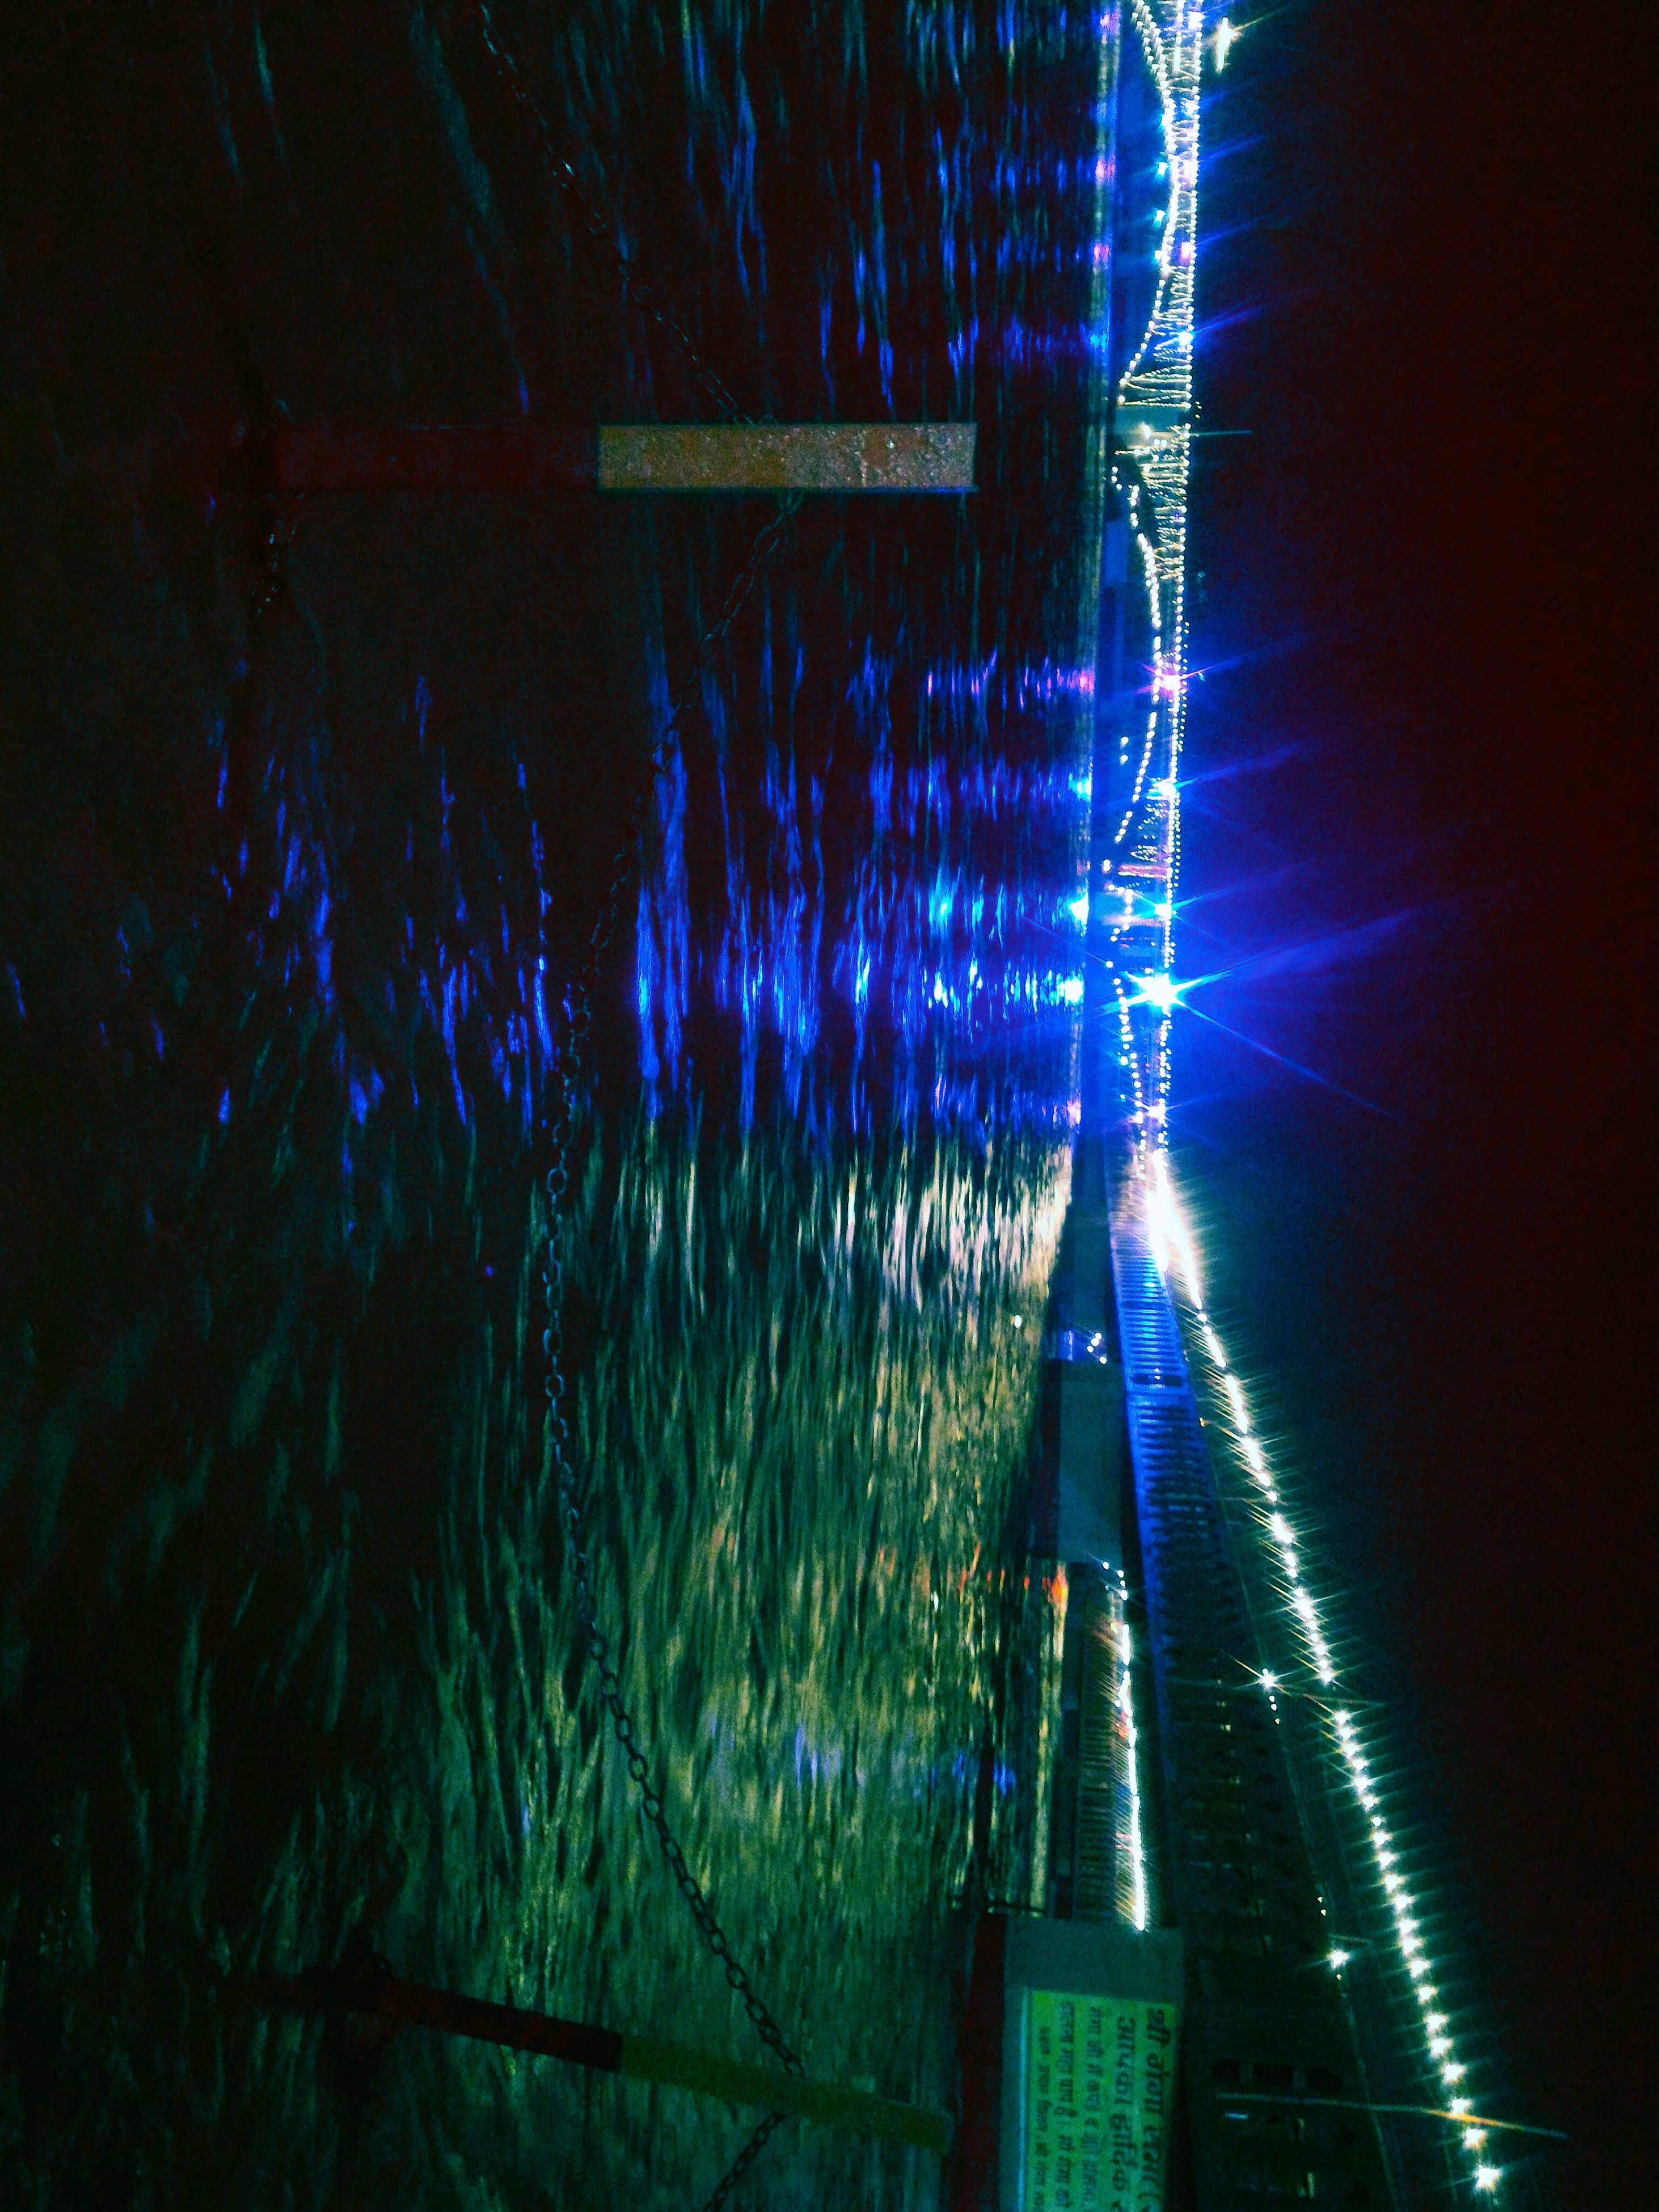 night, illuminated, water, long exposure, motion, glowing, light - natural phenomenon, blurred motion, blue, outdoors, reflection, light trail, sky, lighting equipment, light, sparks, one person, speed, nature